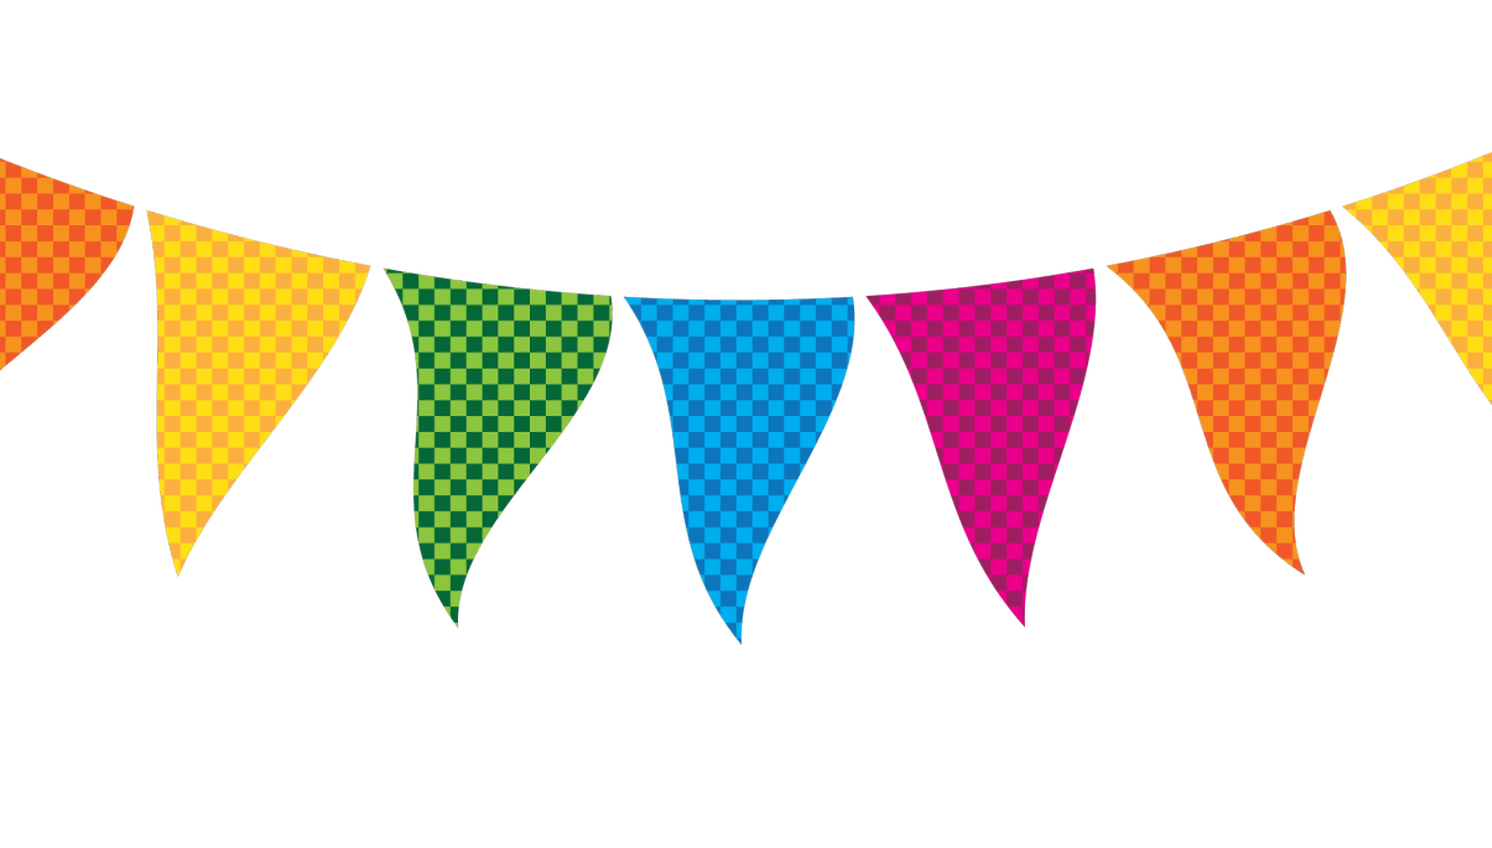 Party clipart party banner. Flag fall vintage star